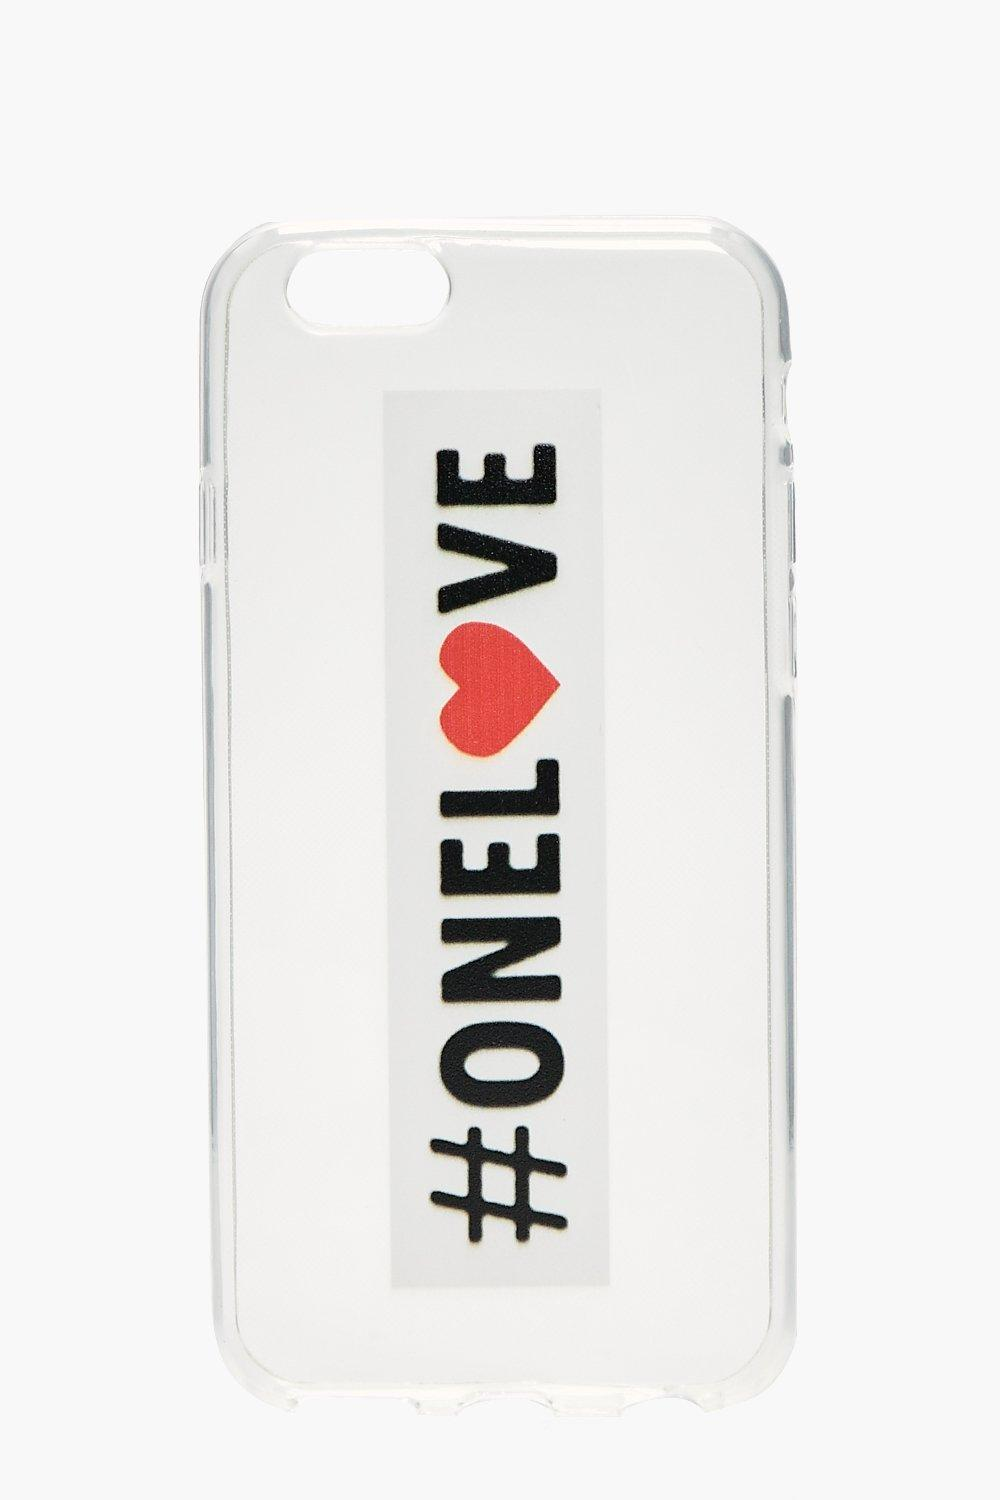 iPhone 6 Case One Love - white - Charity iPhone 6